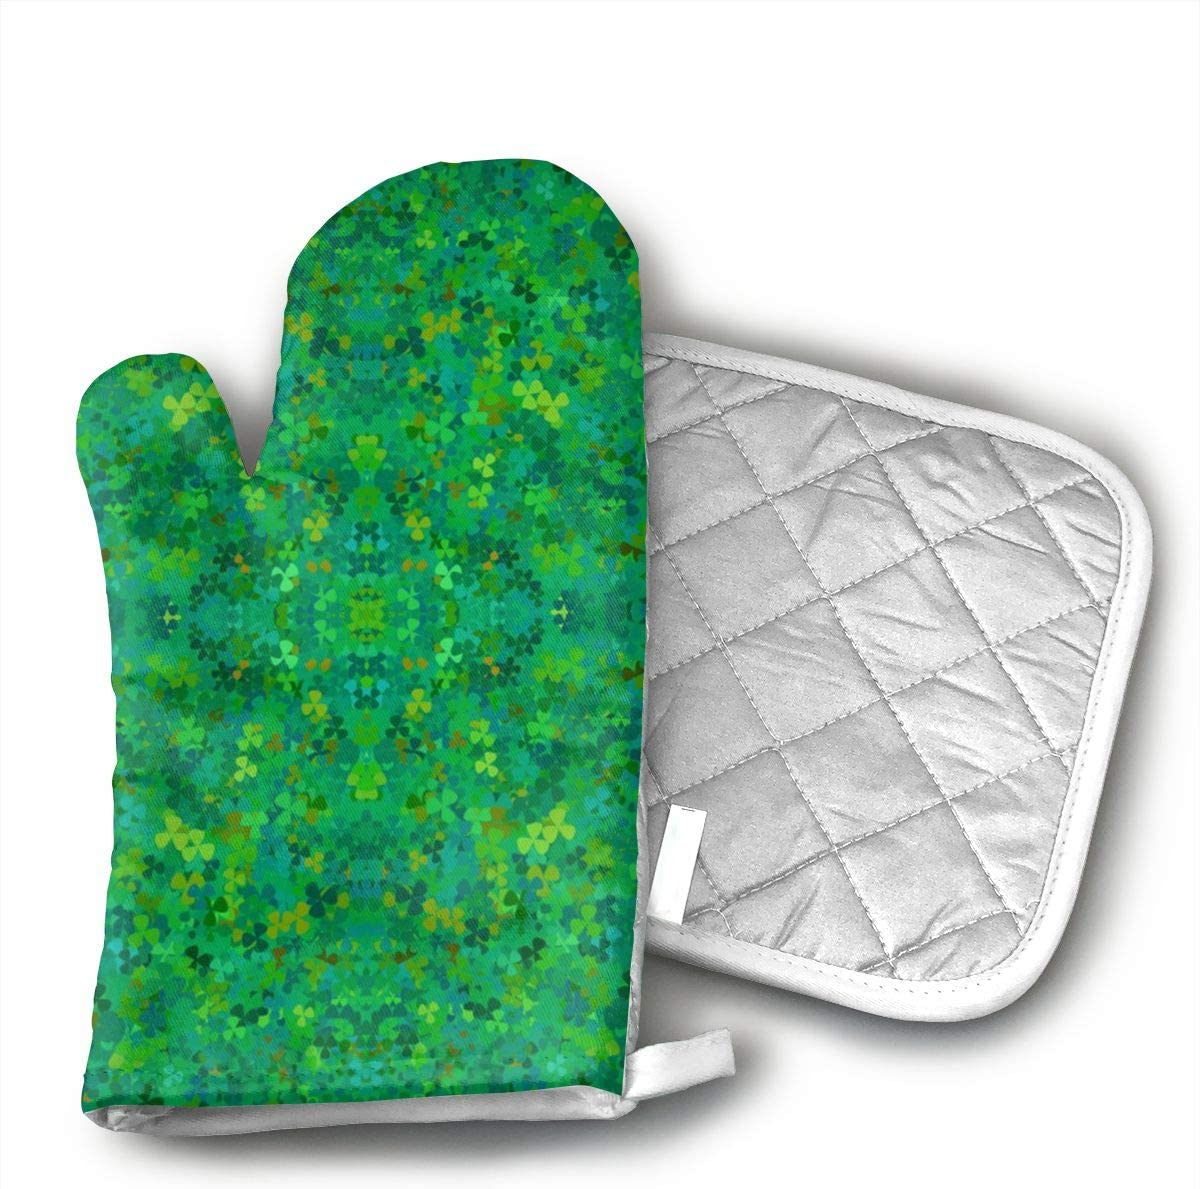 Wiqo9 Bright Shamrocks Oven Mitts and Pot Holders Kitchen Mitten Cooking Gloves,Cooking, Baking, BBQ.